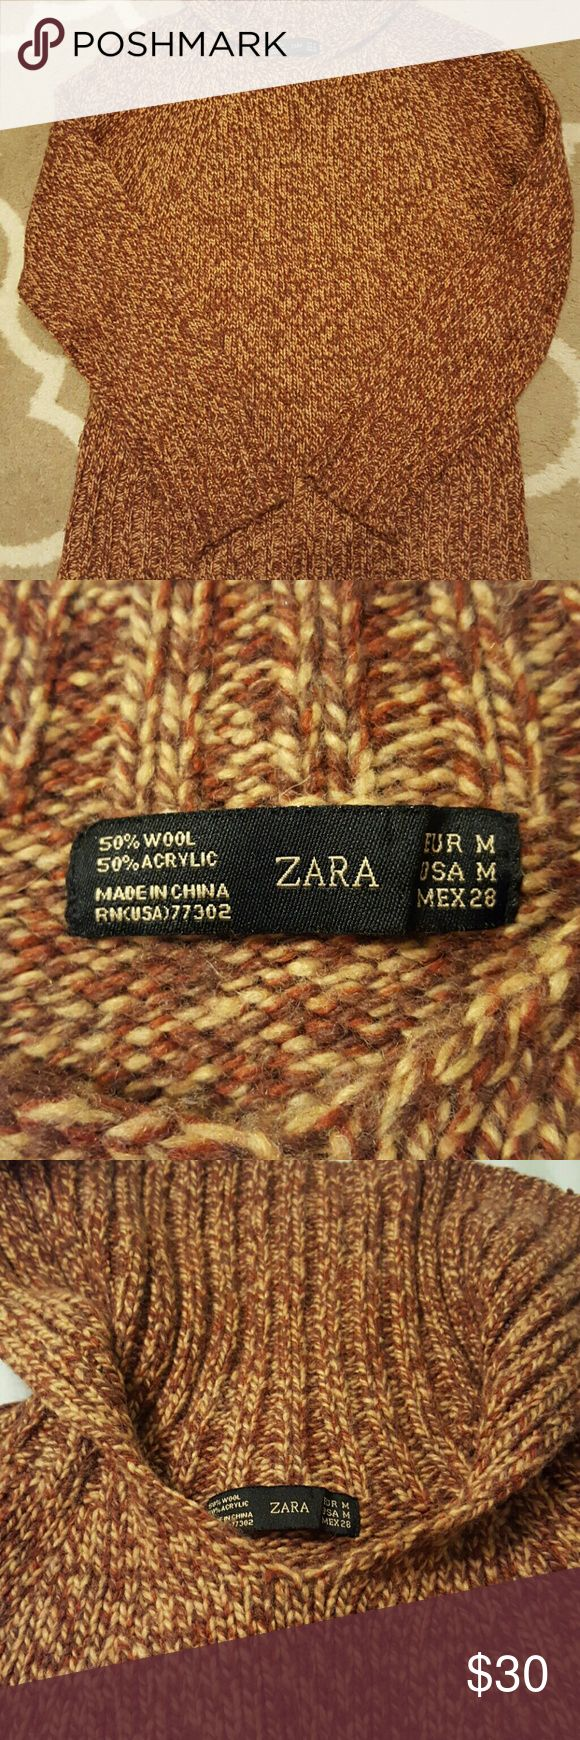 1 DAY SALE!! Zara Wool Sweater This warm and trendy sweater is ready for Fall/Winter!  Material is 50% wool and 50% acrylic. Fold down neck in the back, slight v neck in the front. No flaws! Zara Sweaters